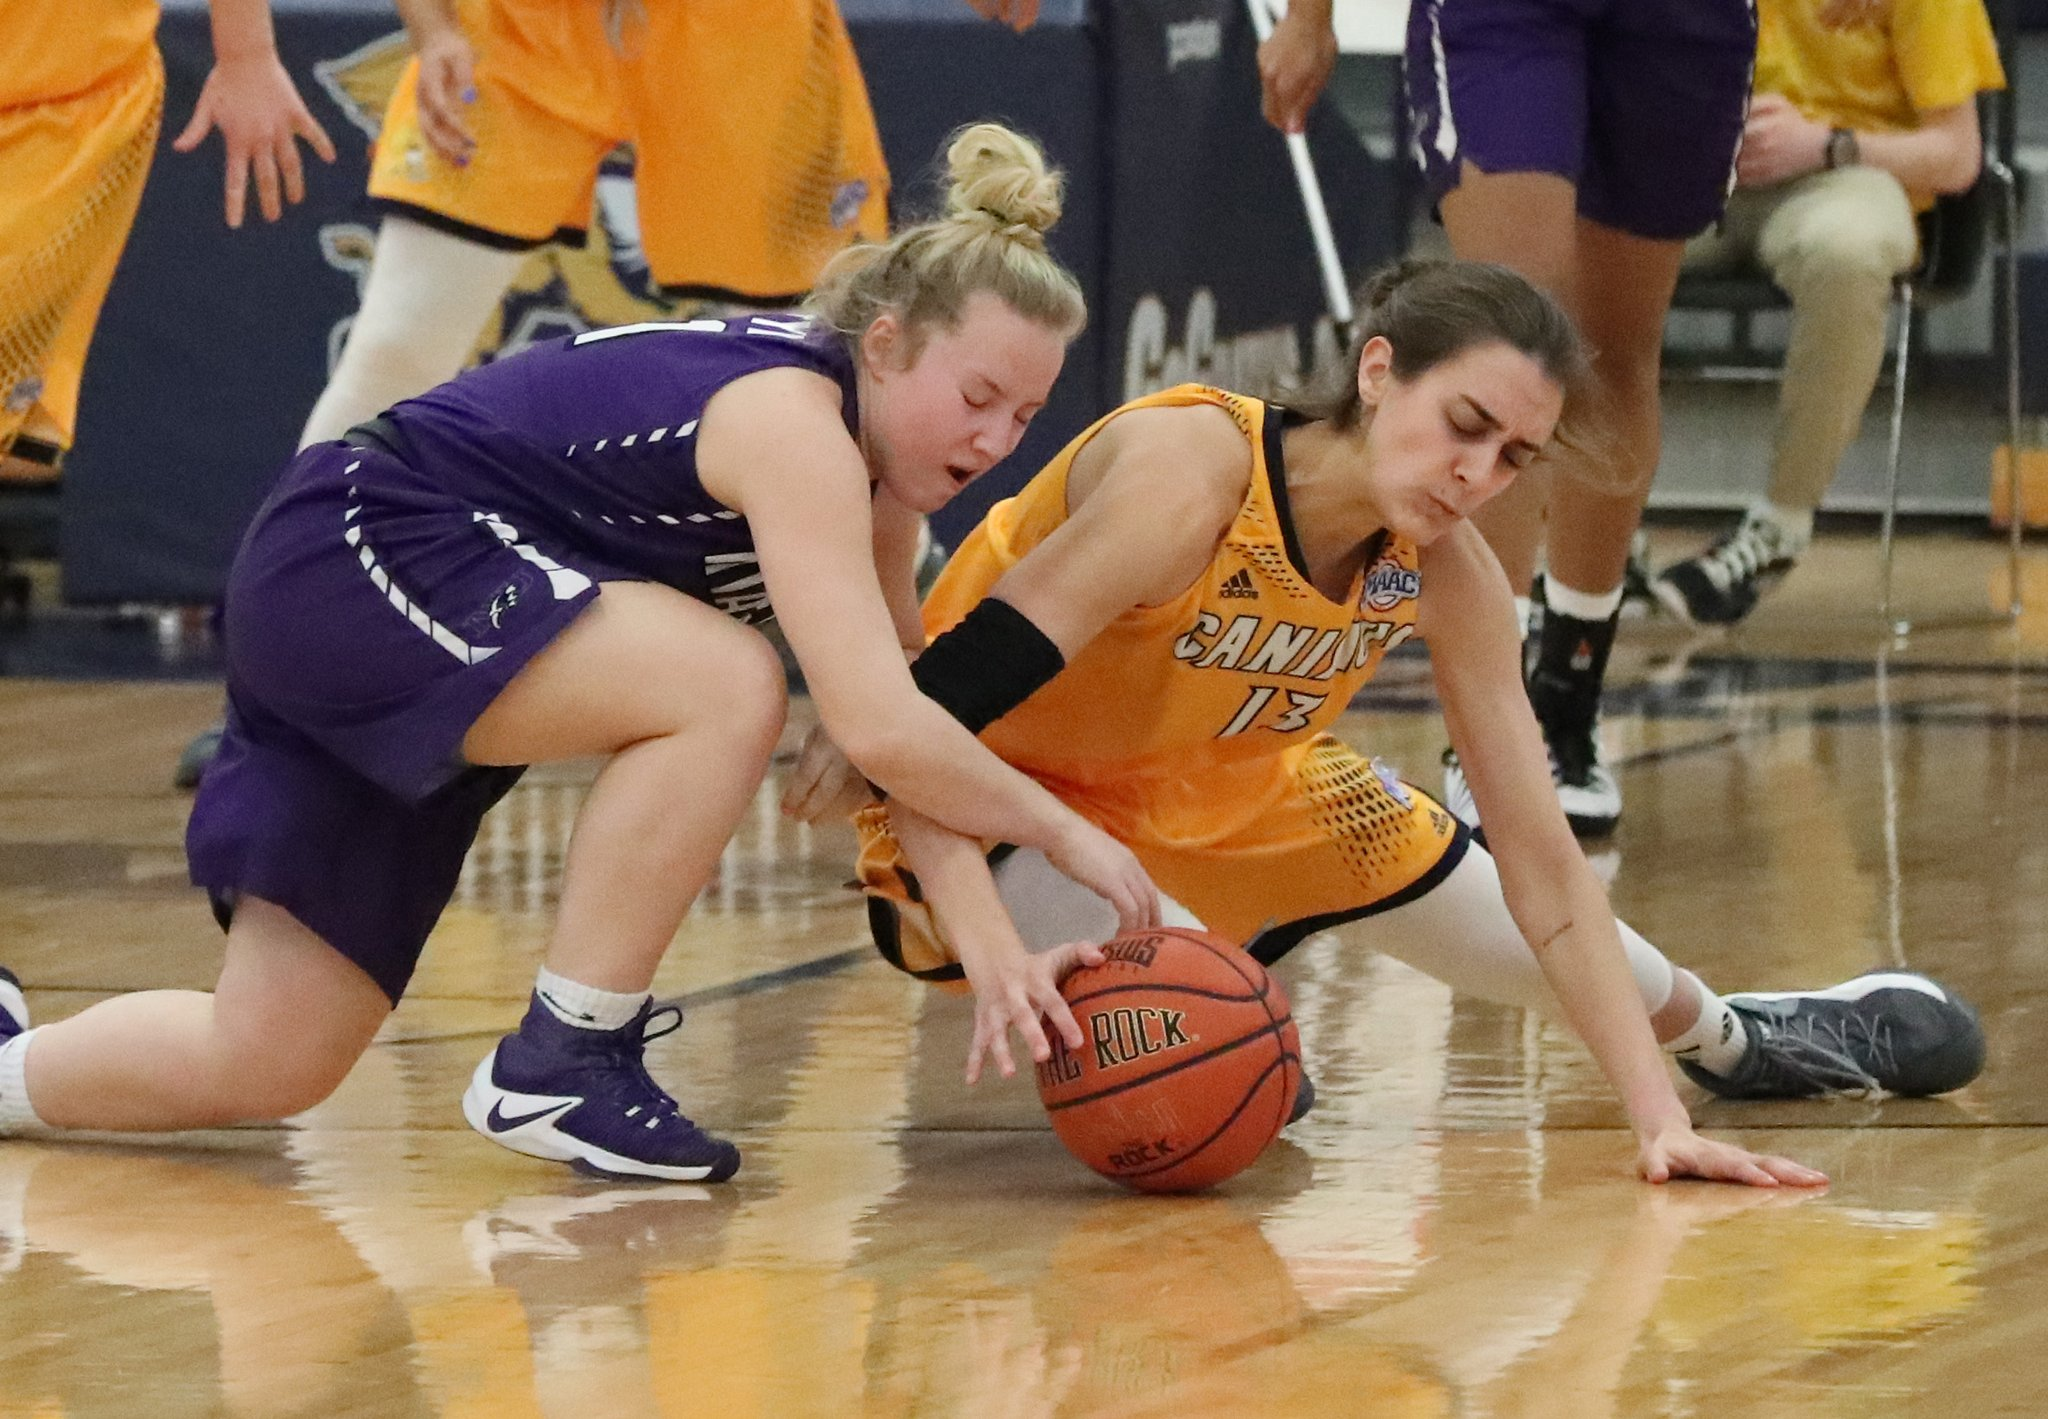 Canisius' Maria Welch and Niagara's Maggie McIntyre go for a loose ball. (James P. McCoy/Buffalo News)